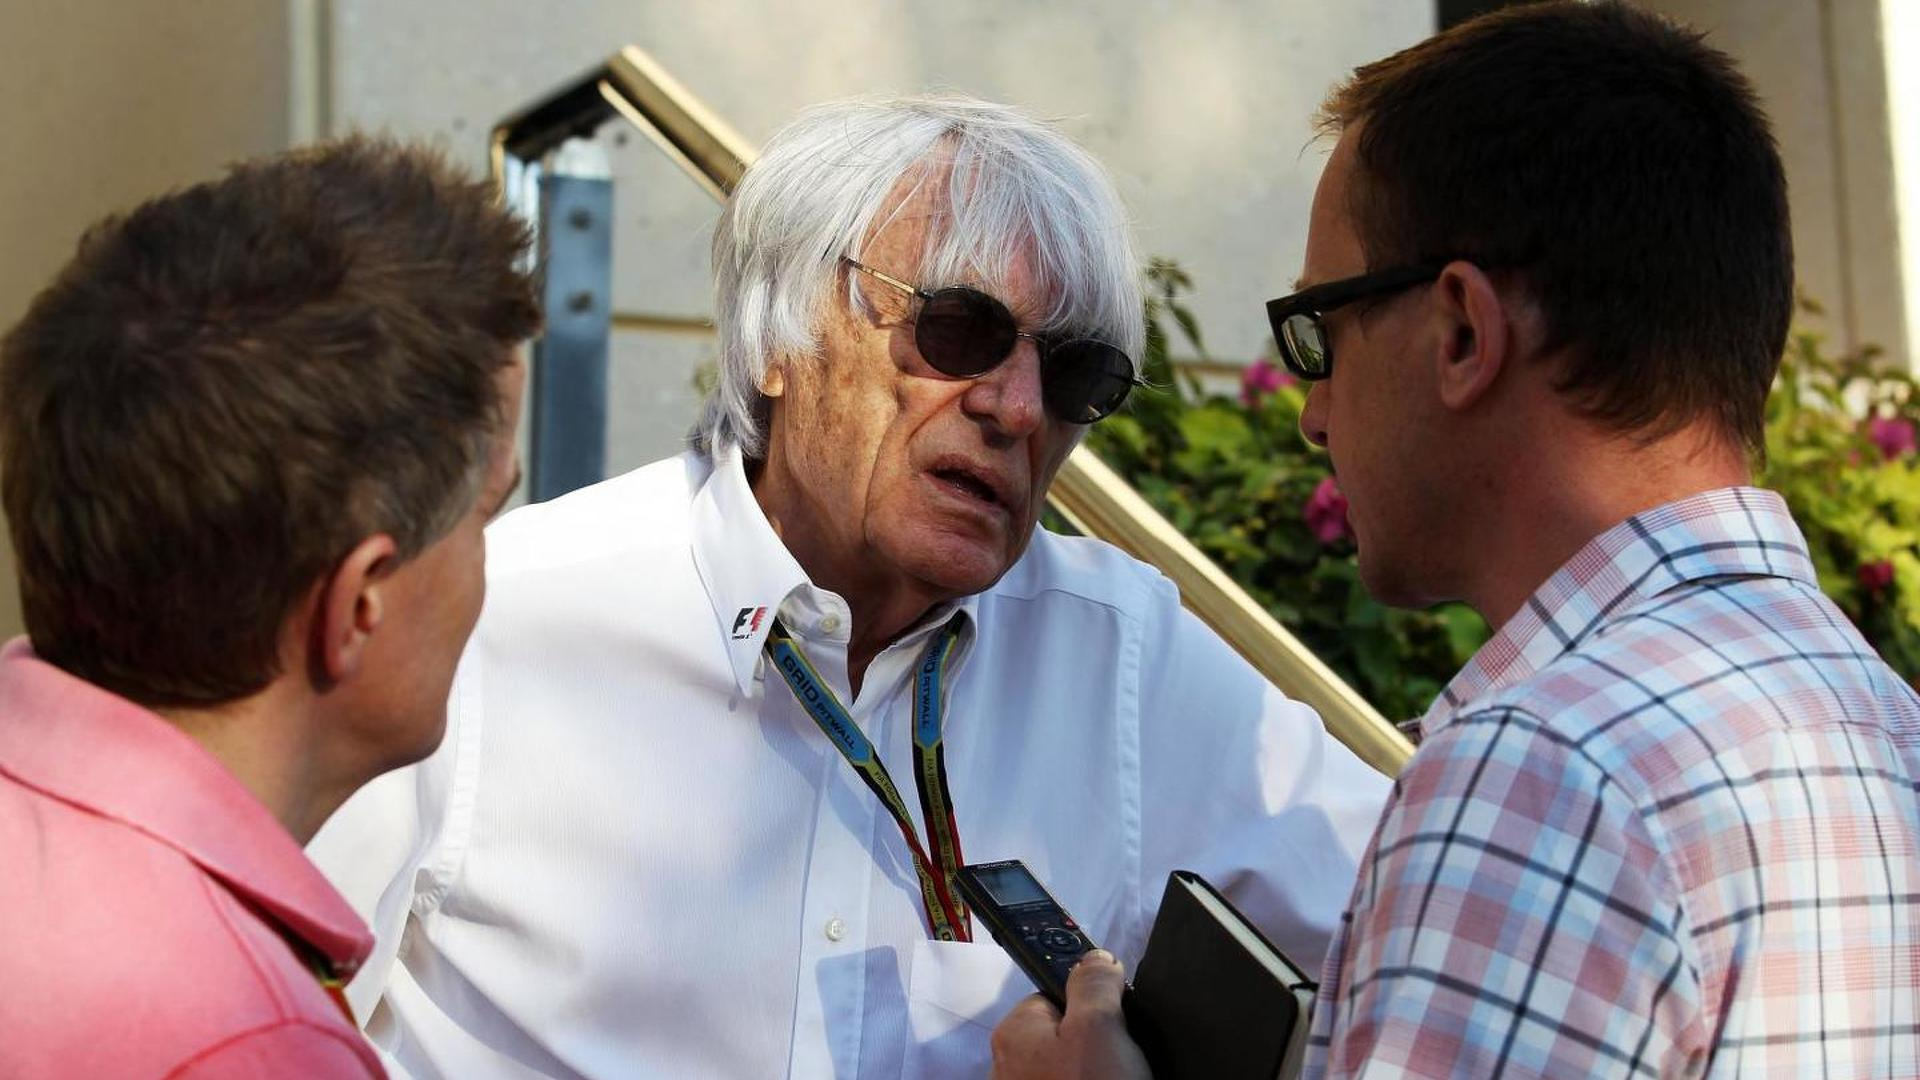 Smaller teams less committed to F1 - Ecclestone